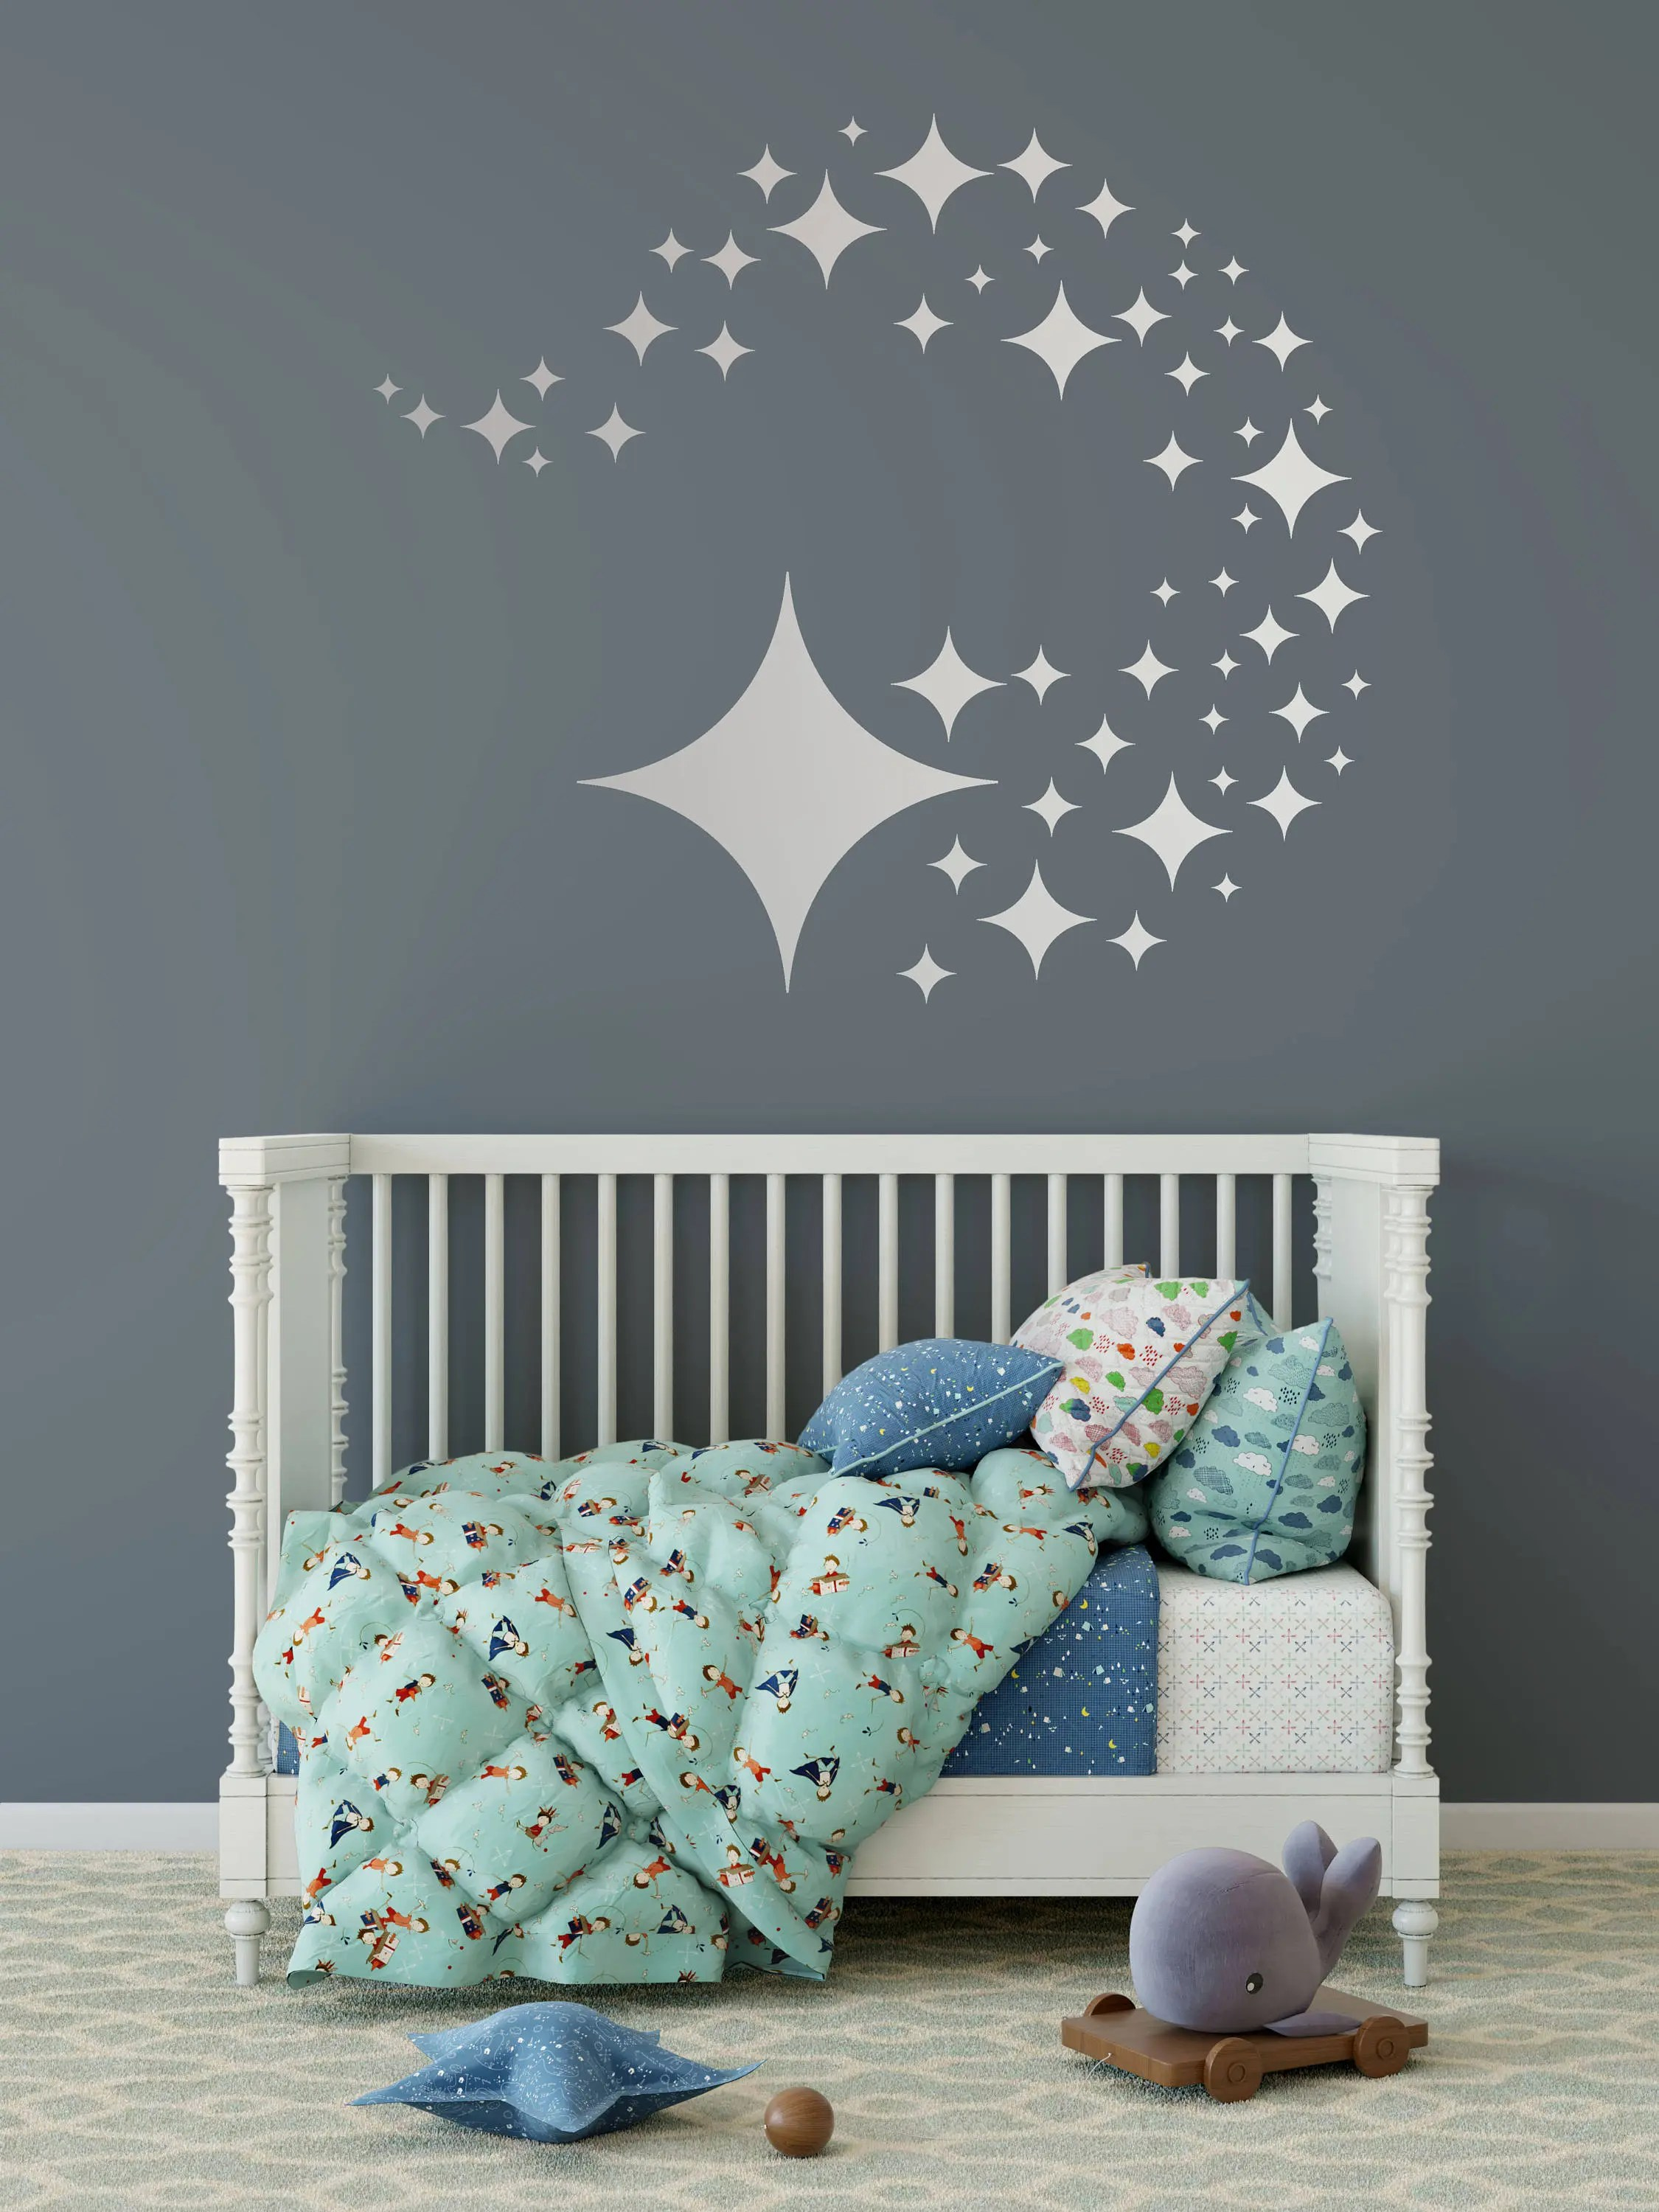 Fullsize Of Wall Decals For Nursery